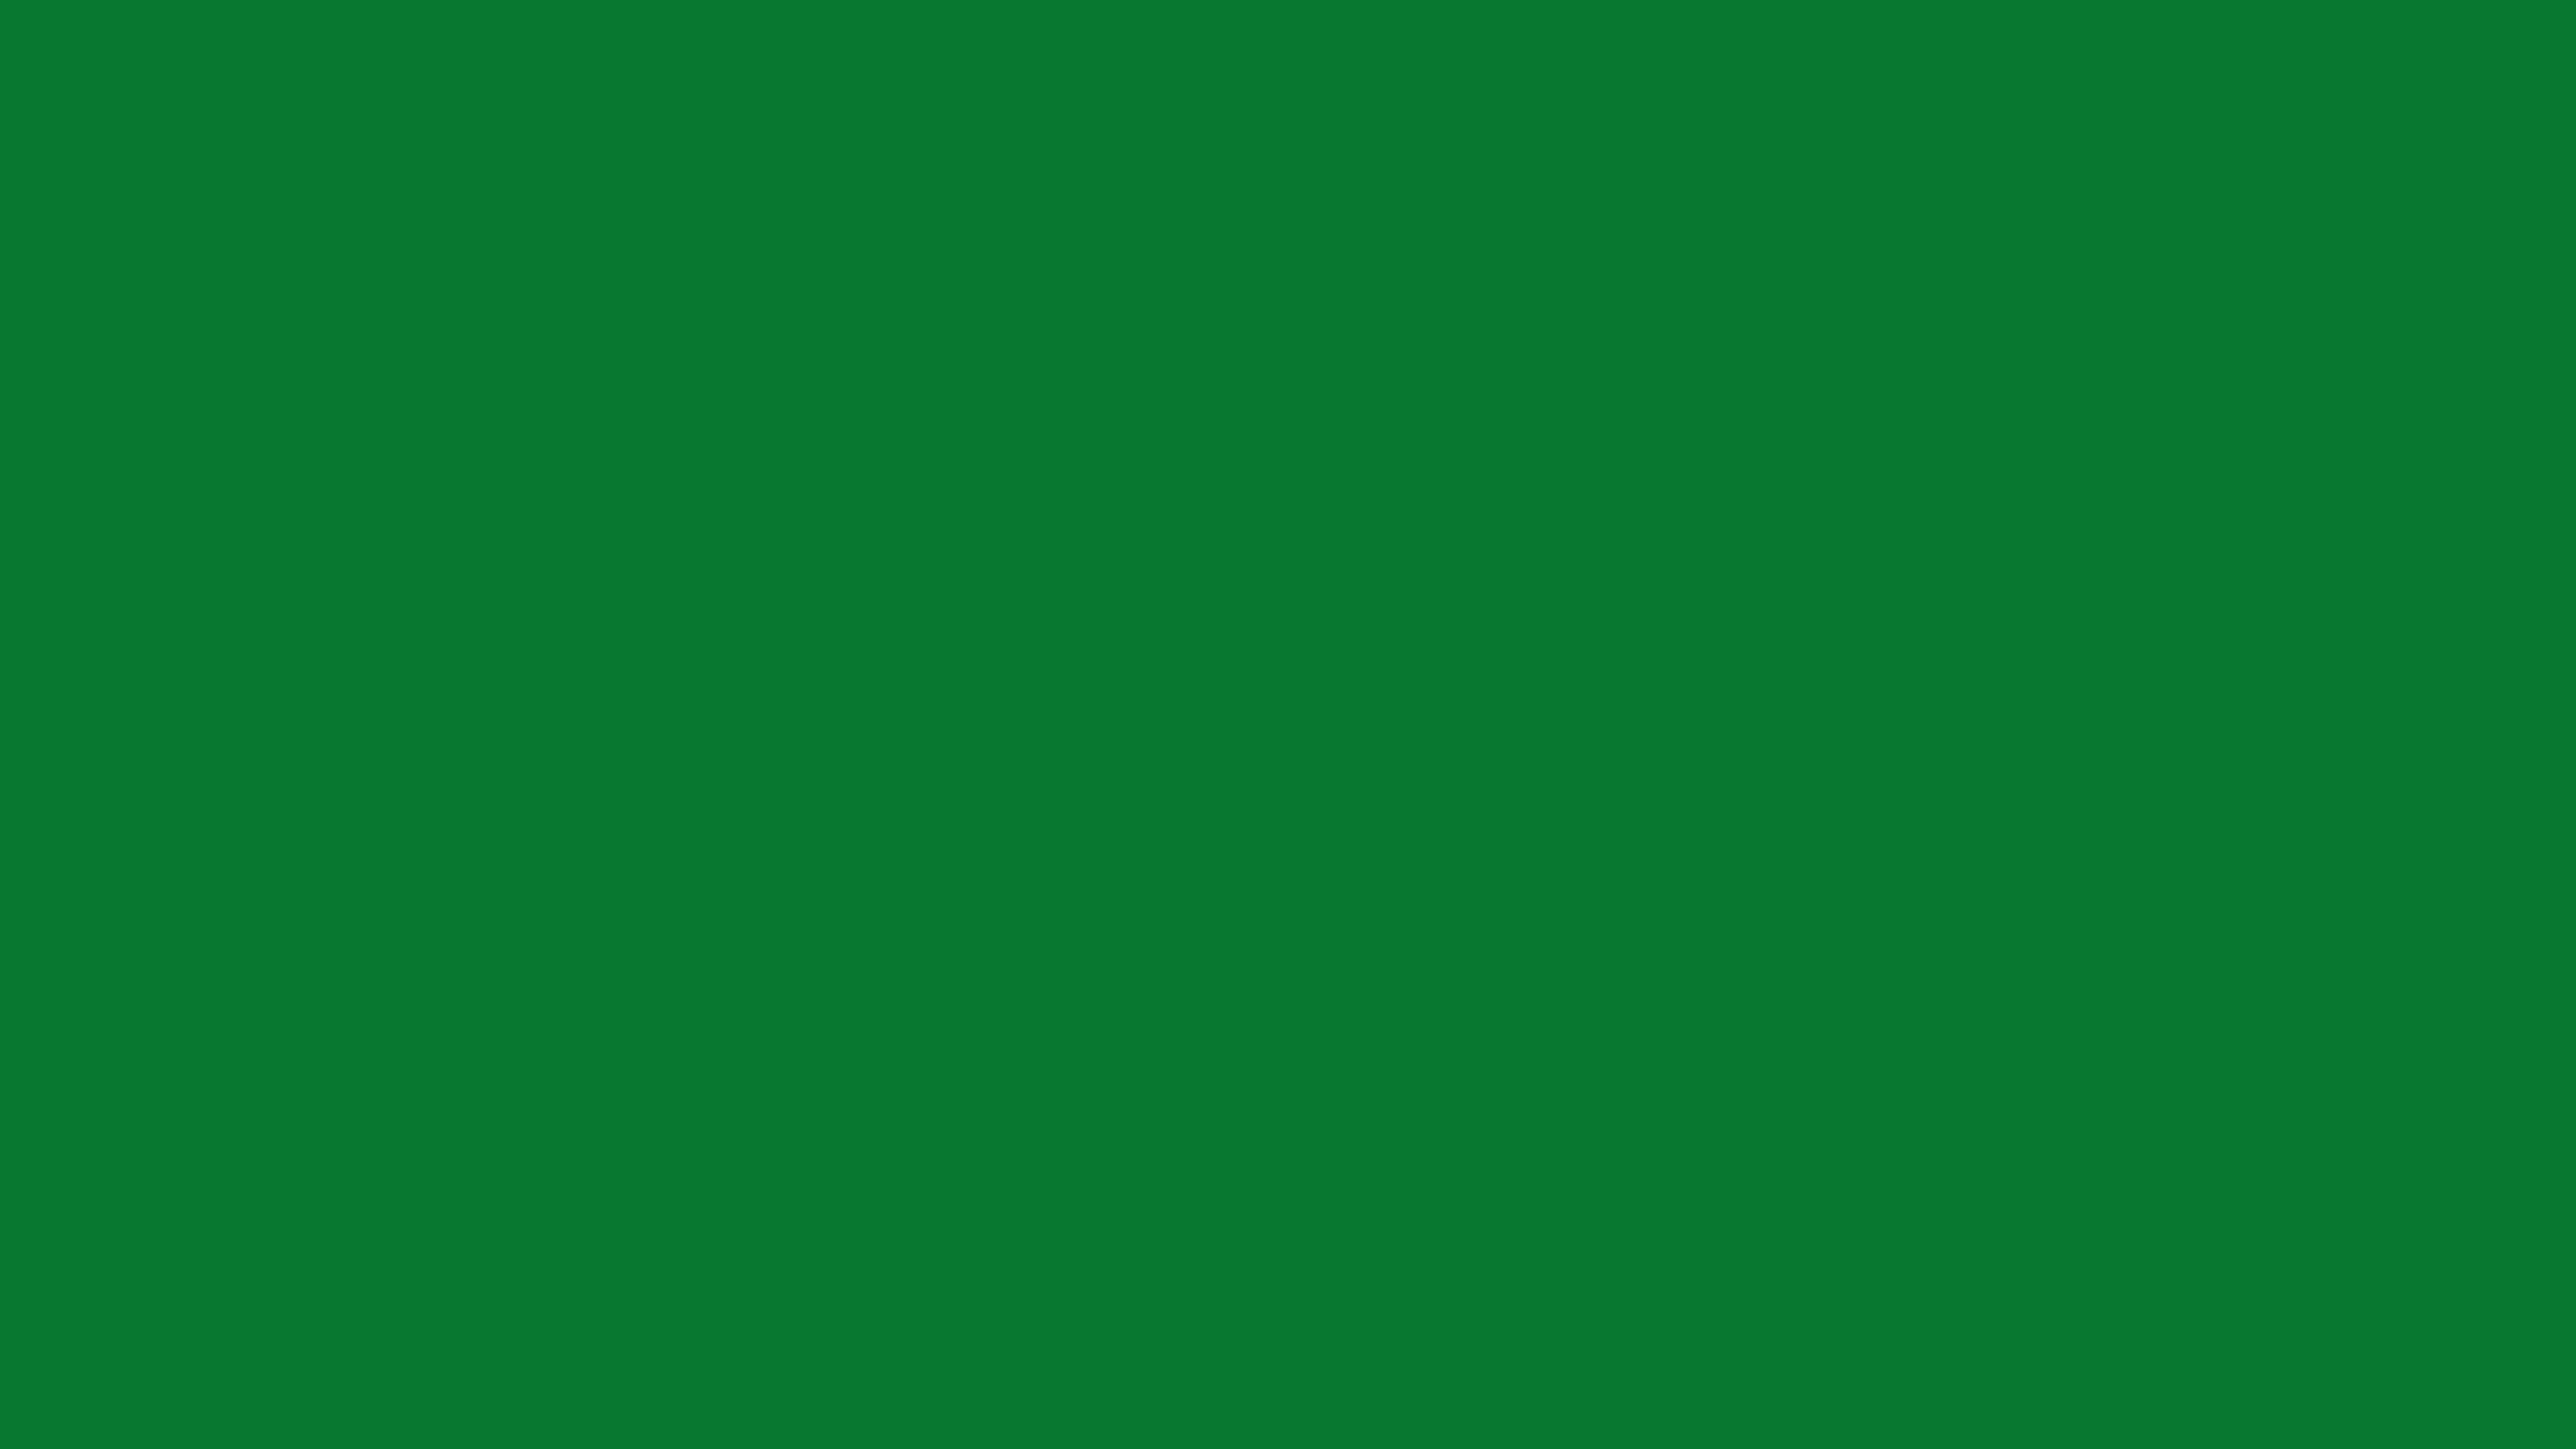 3840x2160 La Salle Green Solid Color Background